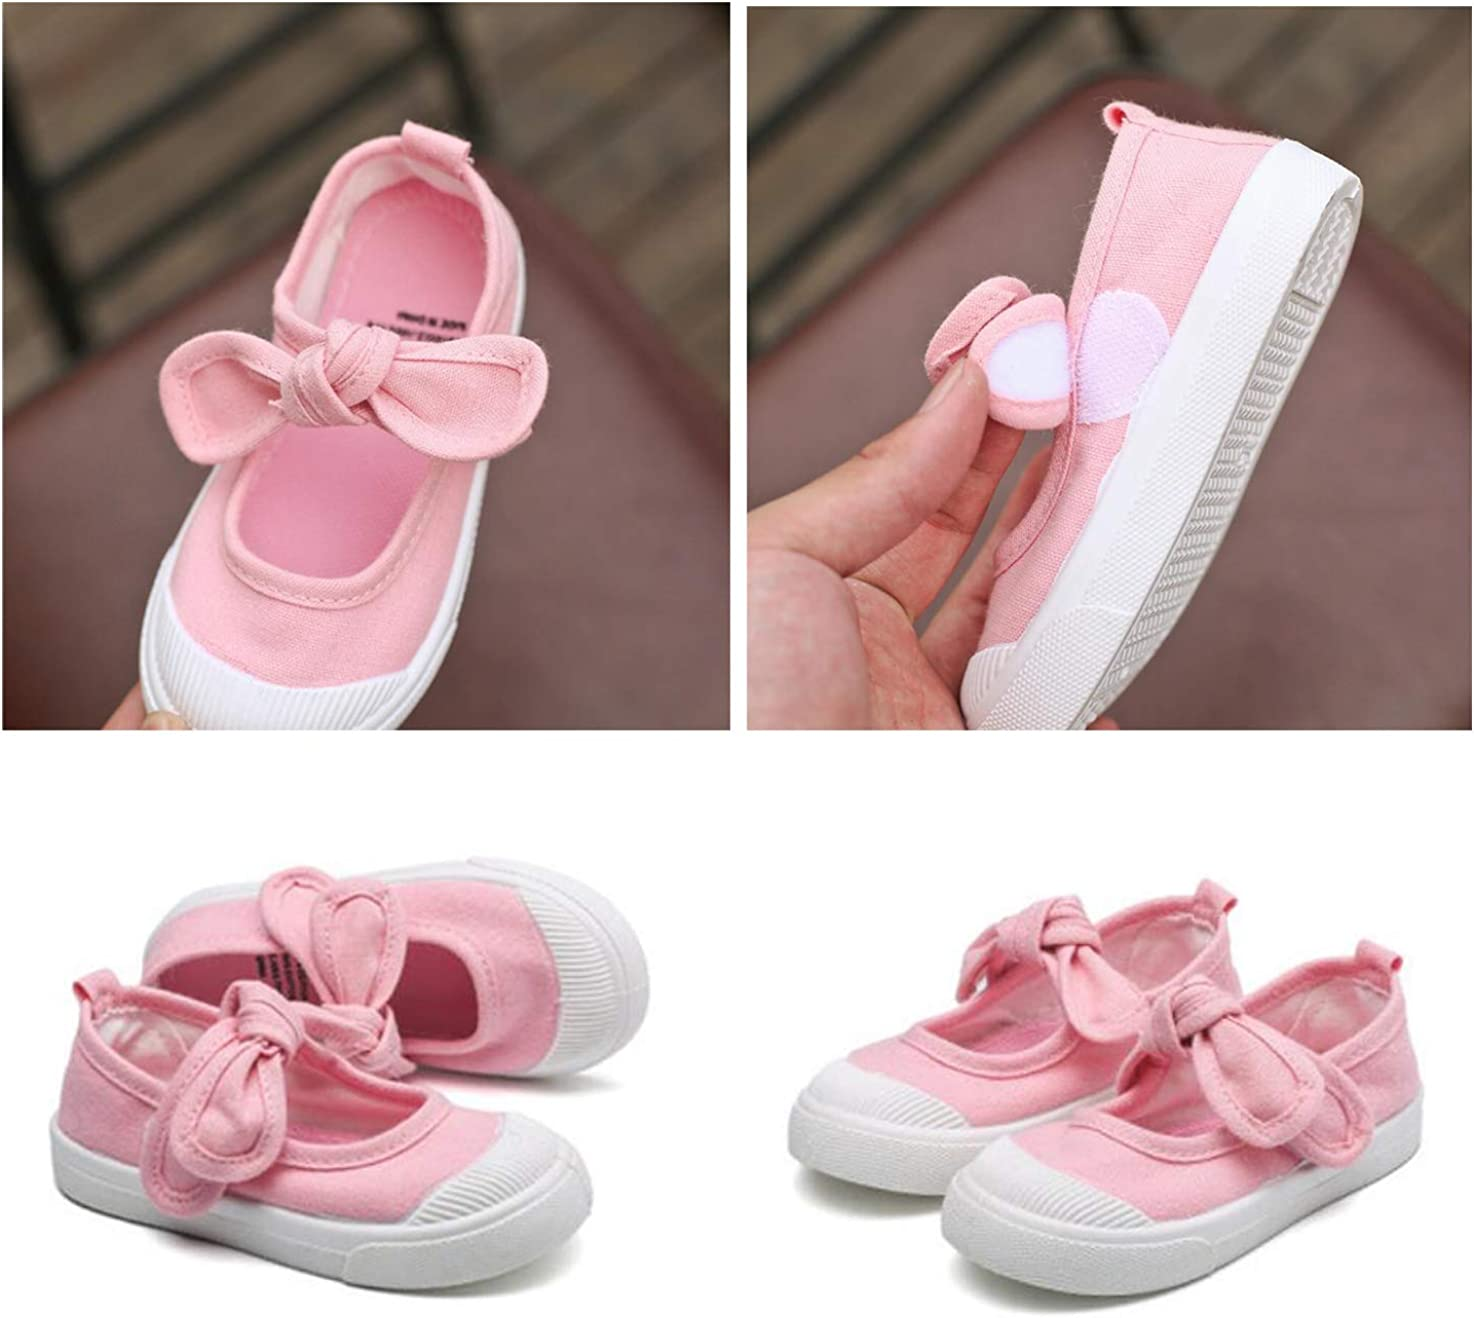 DEBAIJIA Girls School Canvas Sneakers Bowknot Flats Shoes for Toddler//Little Kid Anti-Slip Magic Tape Toddler Shoes Suitable for 1-12 Years Girls